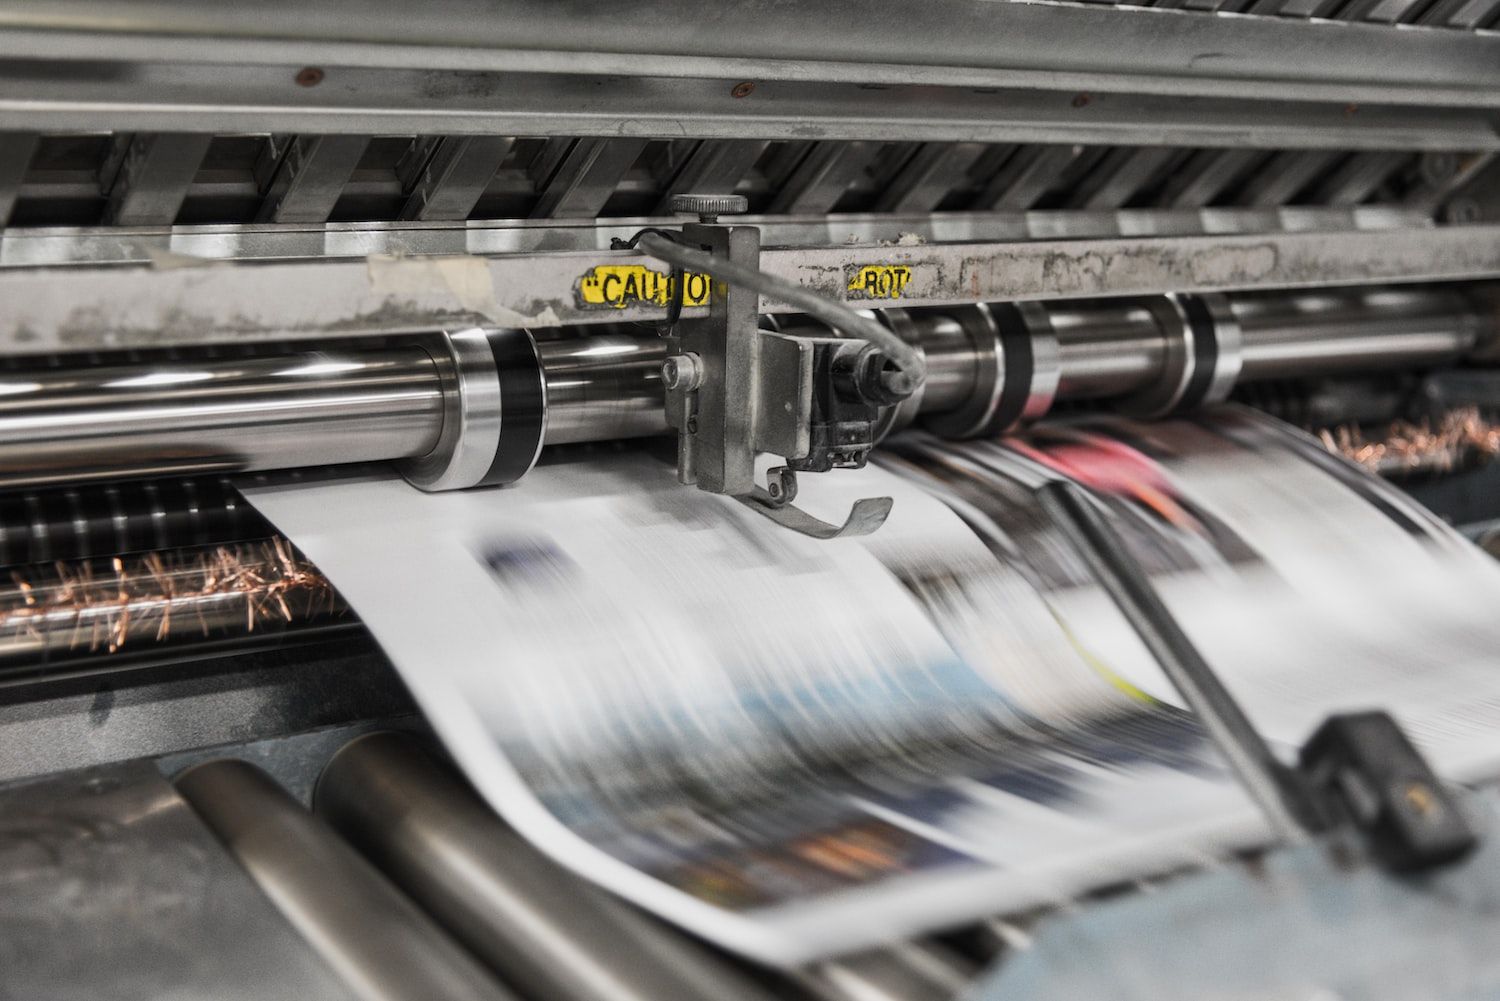 Printing out and reading off the screen can really help you spot mistakes a lot more easily.